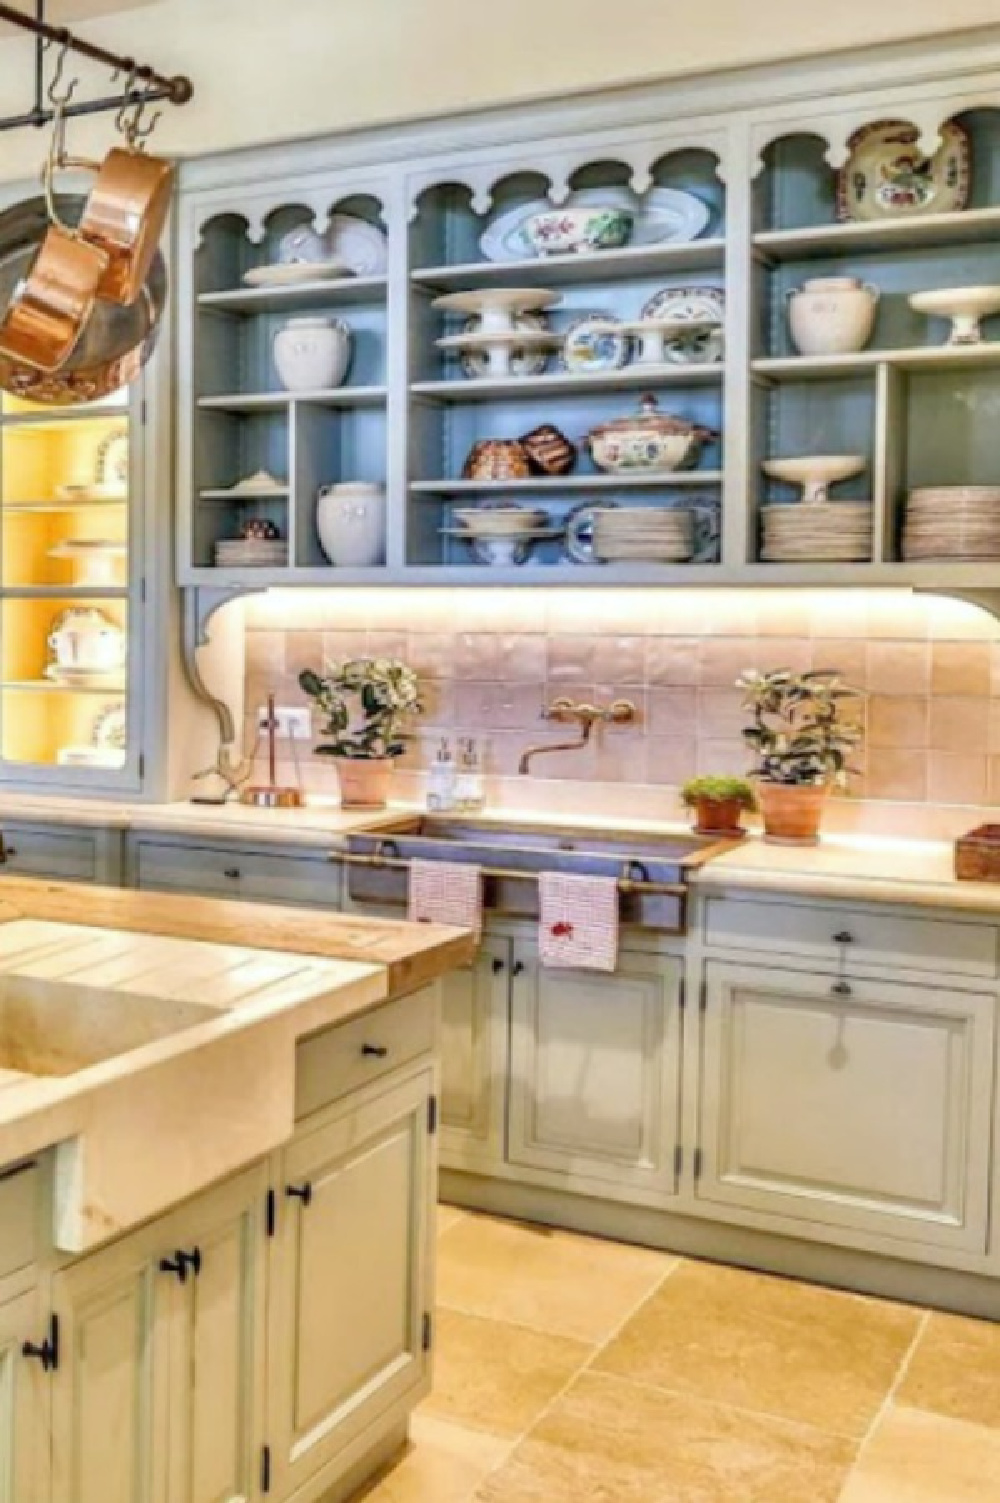 Light blue kitchen cabinets and zellige tile backsplash in a historic French farmhouse in Provence (Le Mas des Poiriers).